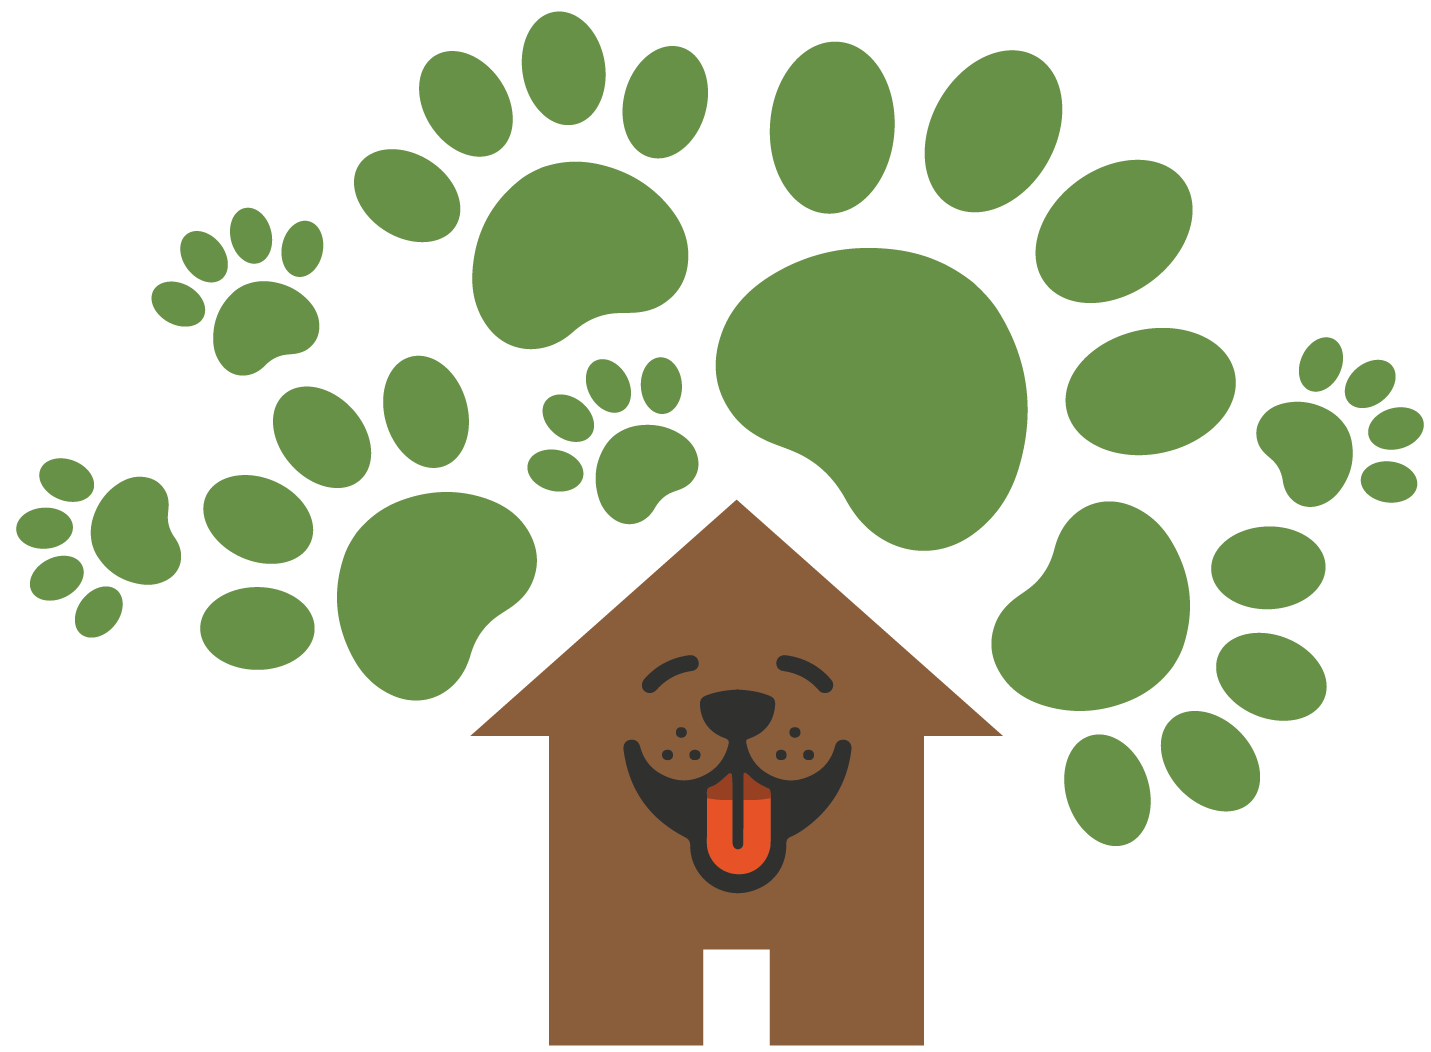 The New Forest Dog Hotel logo